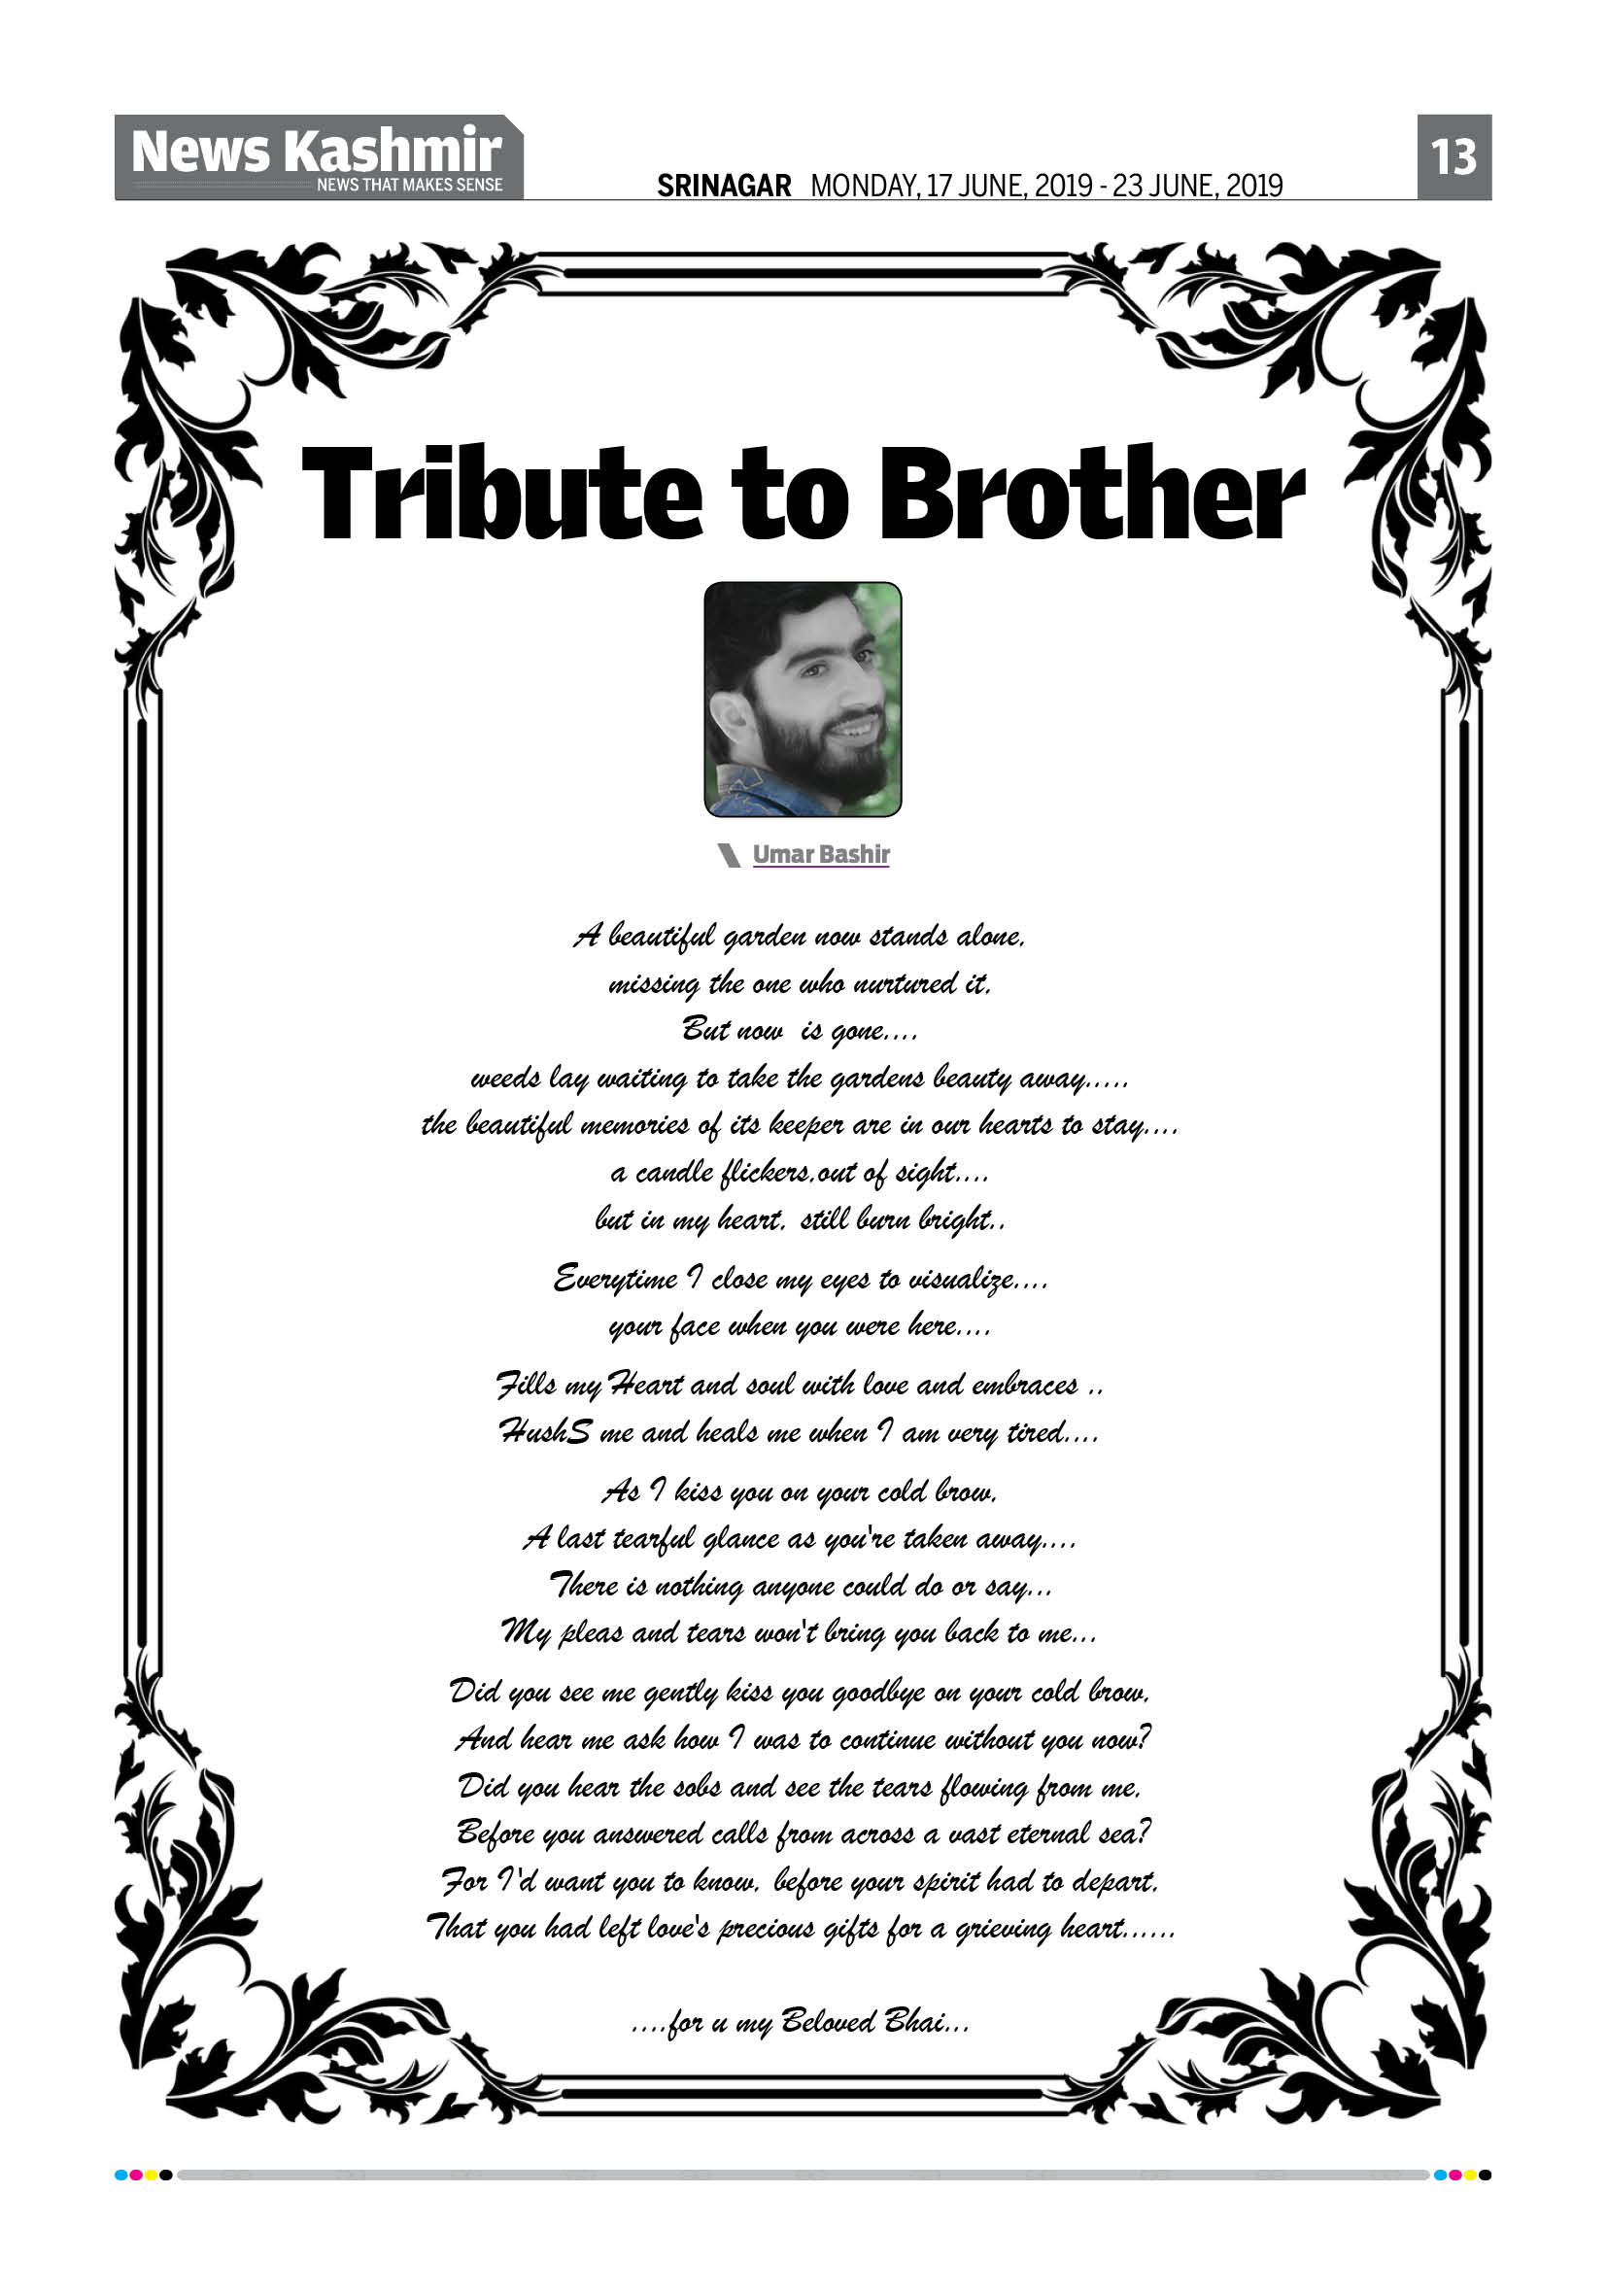 Tribute to Brother